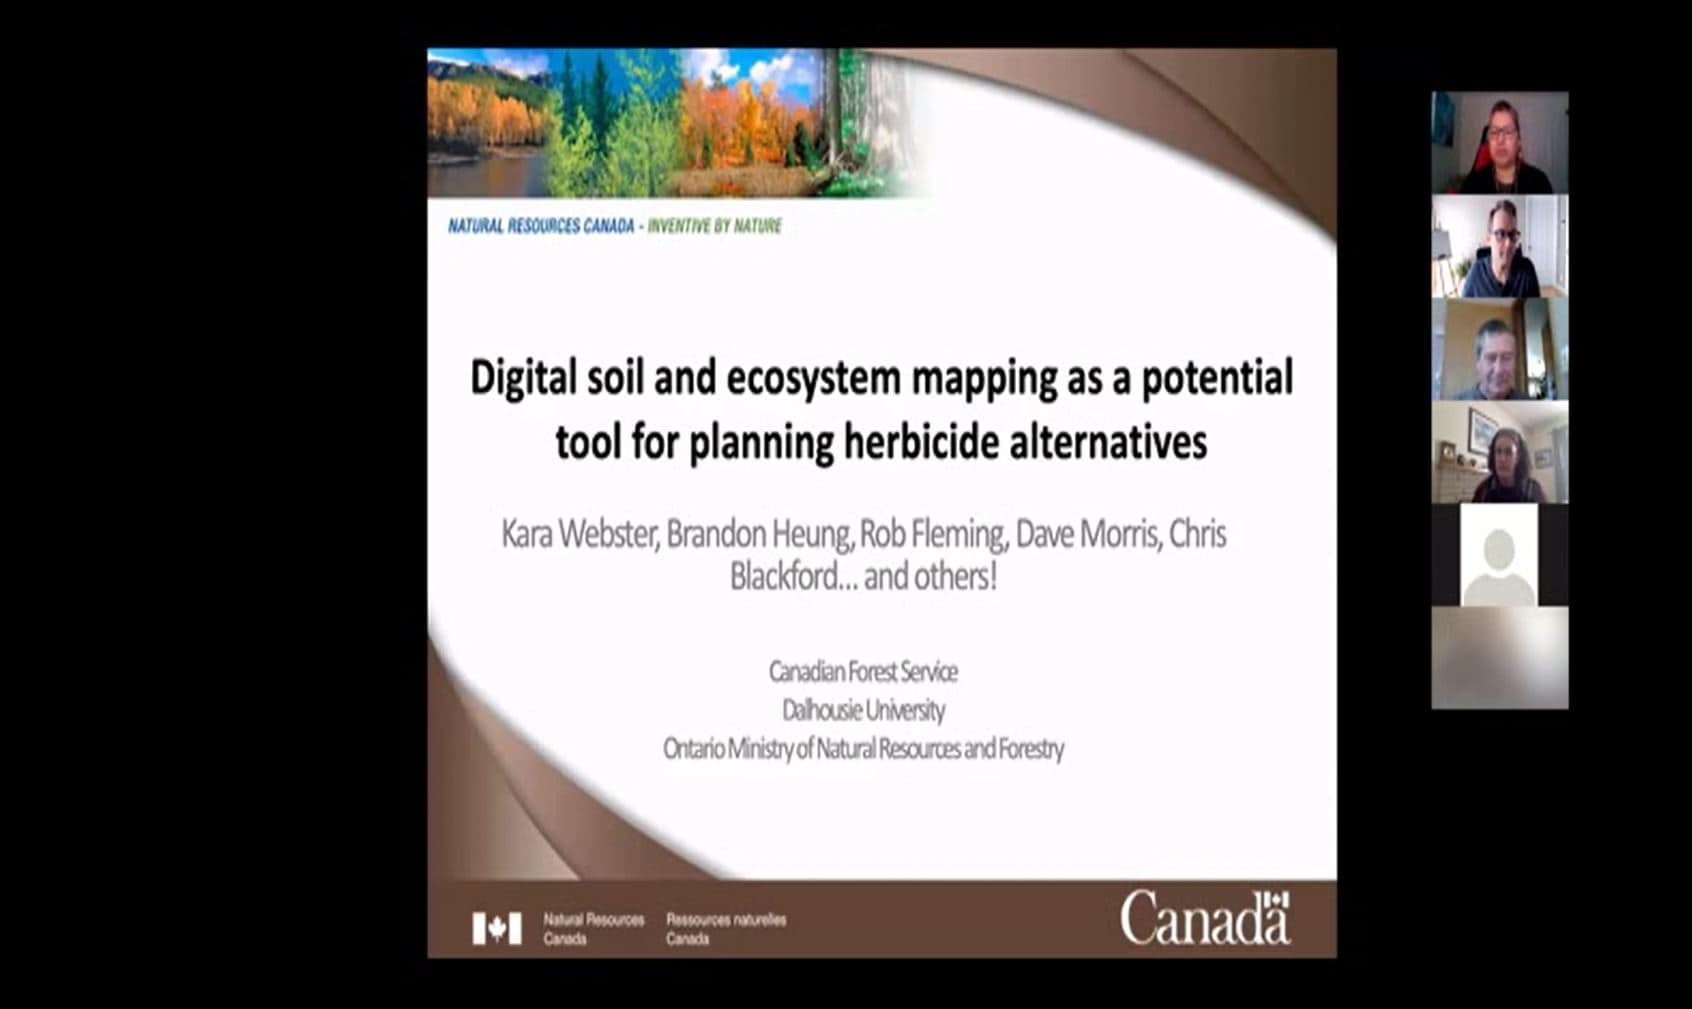 January 2021 - Digital soil and ecosystem mapping